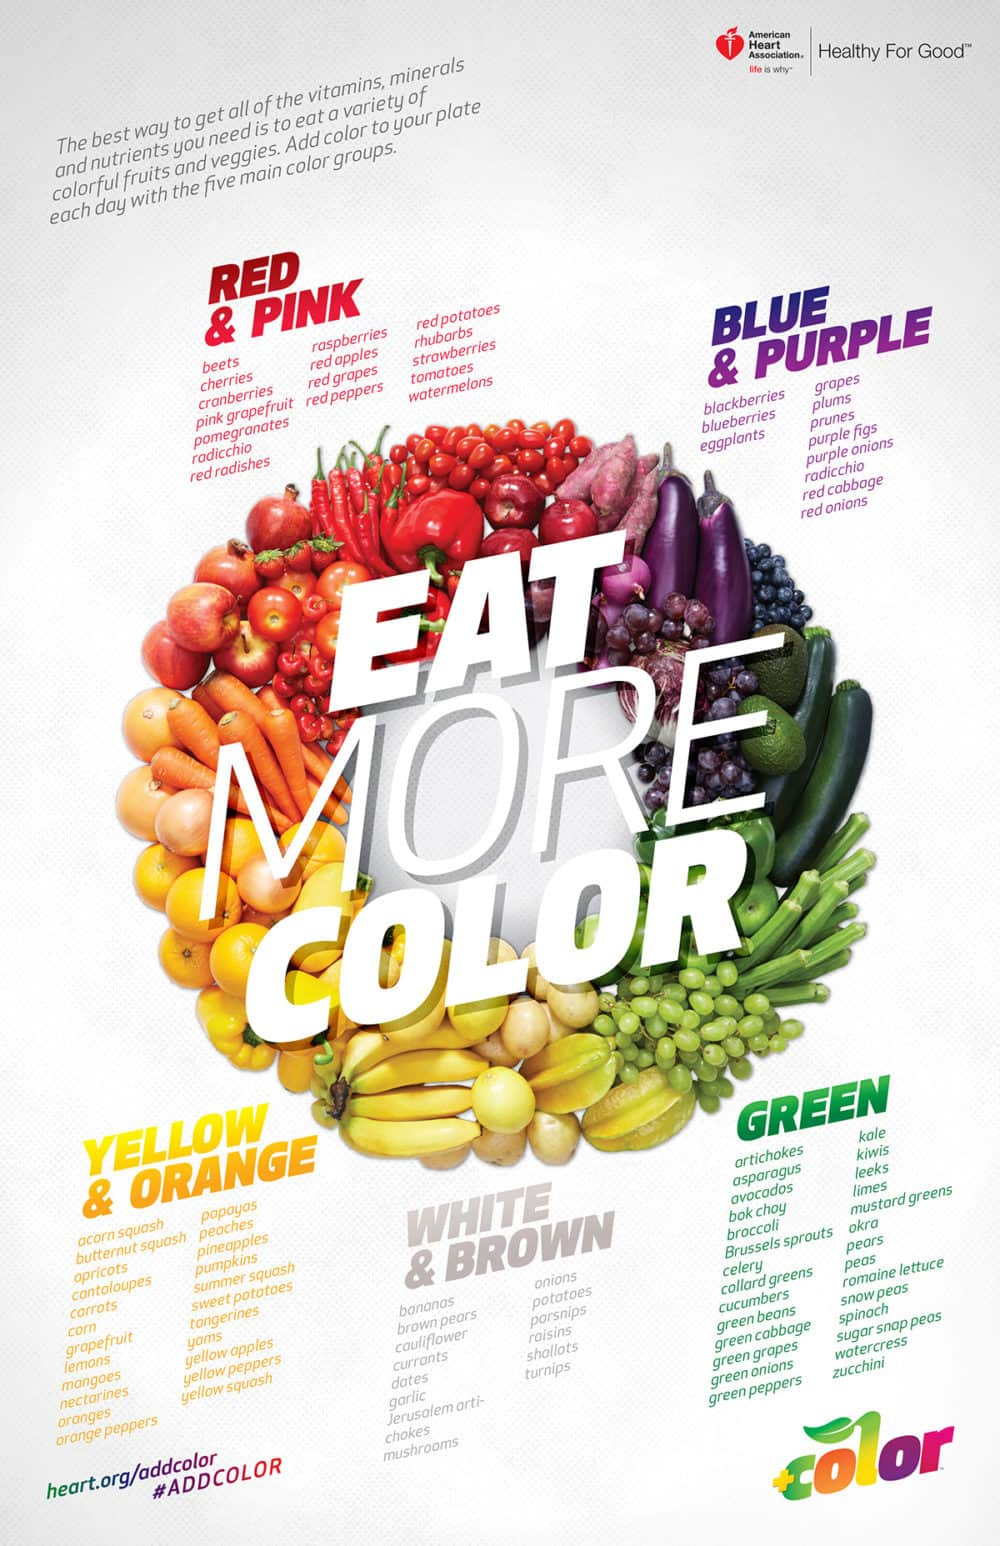 Add more colorful fruits and vegetables to any runners diet for better nutrition! This infographic has great ideas.